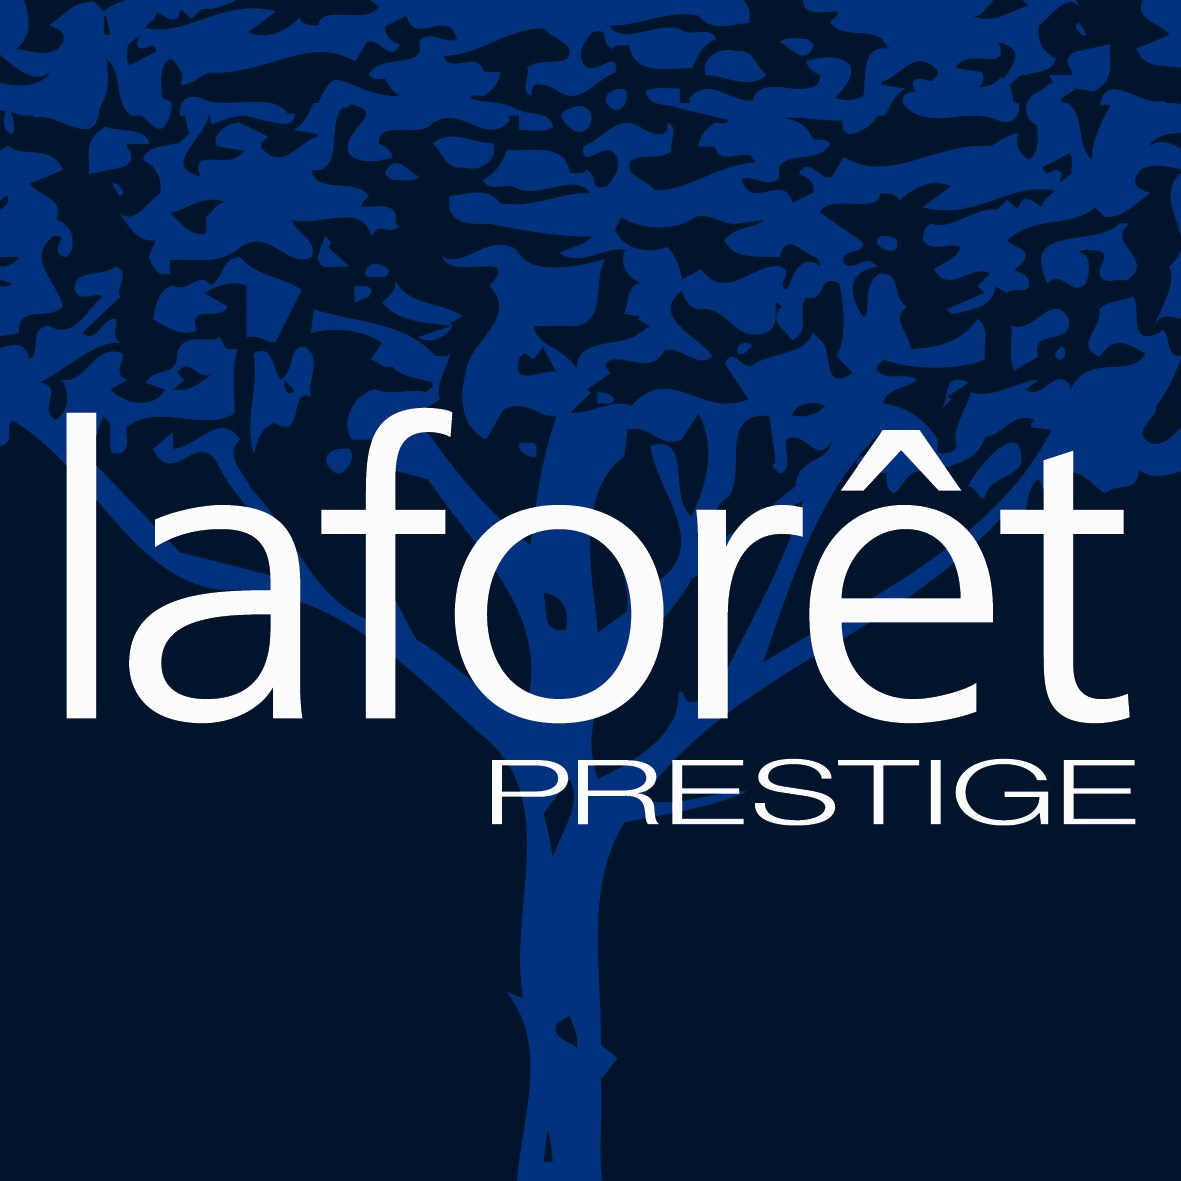 Laforet immobilier agence immobili re la londe les maures for Agence laforet